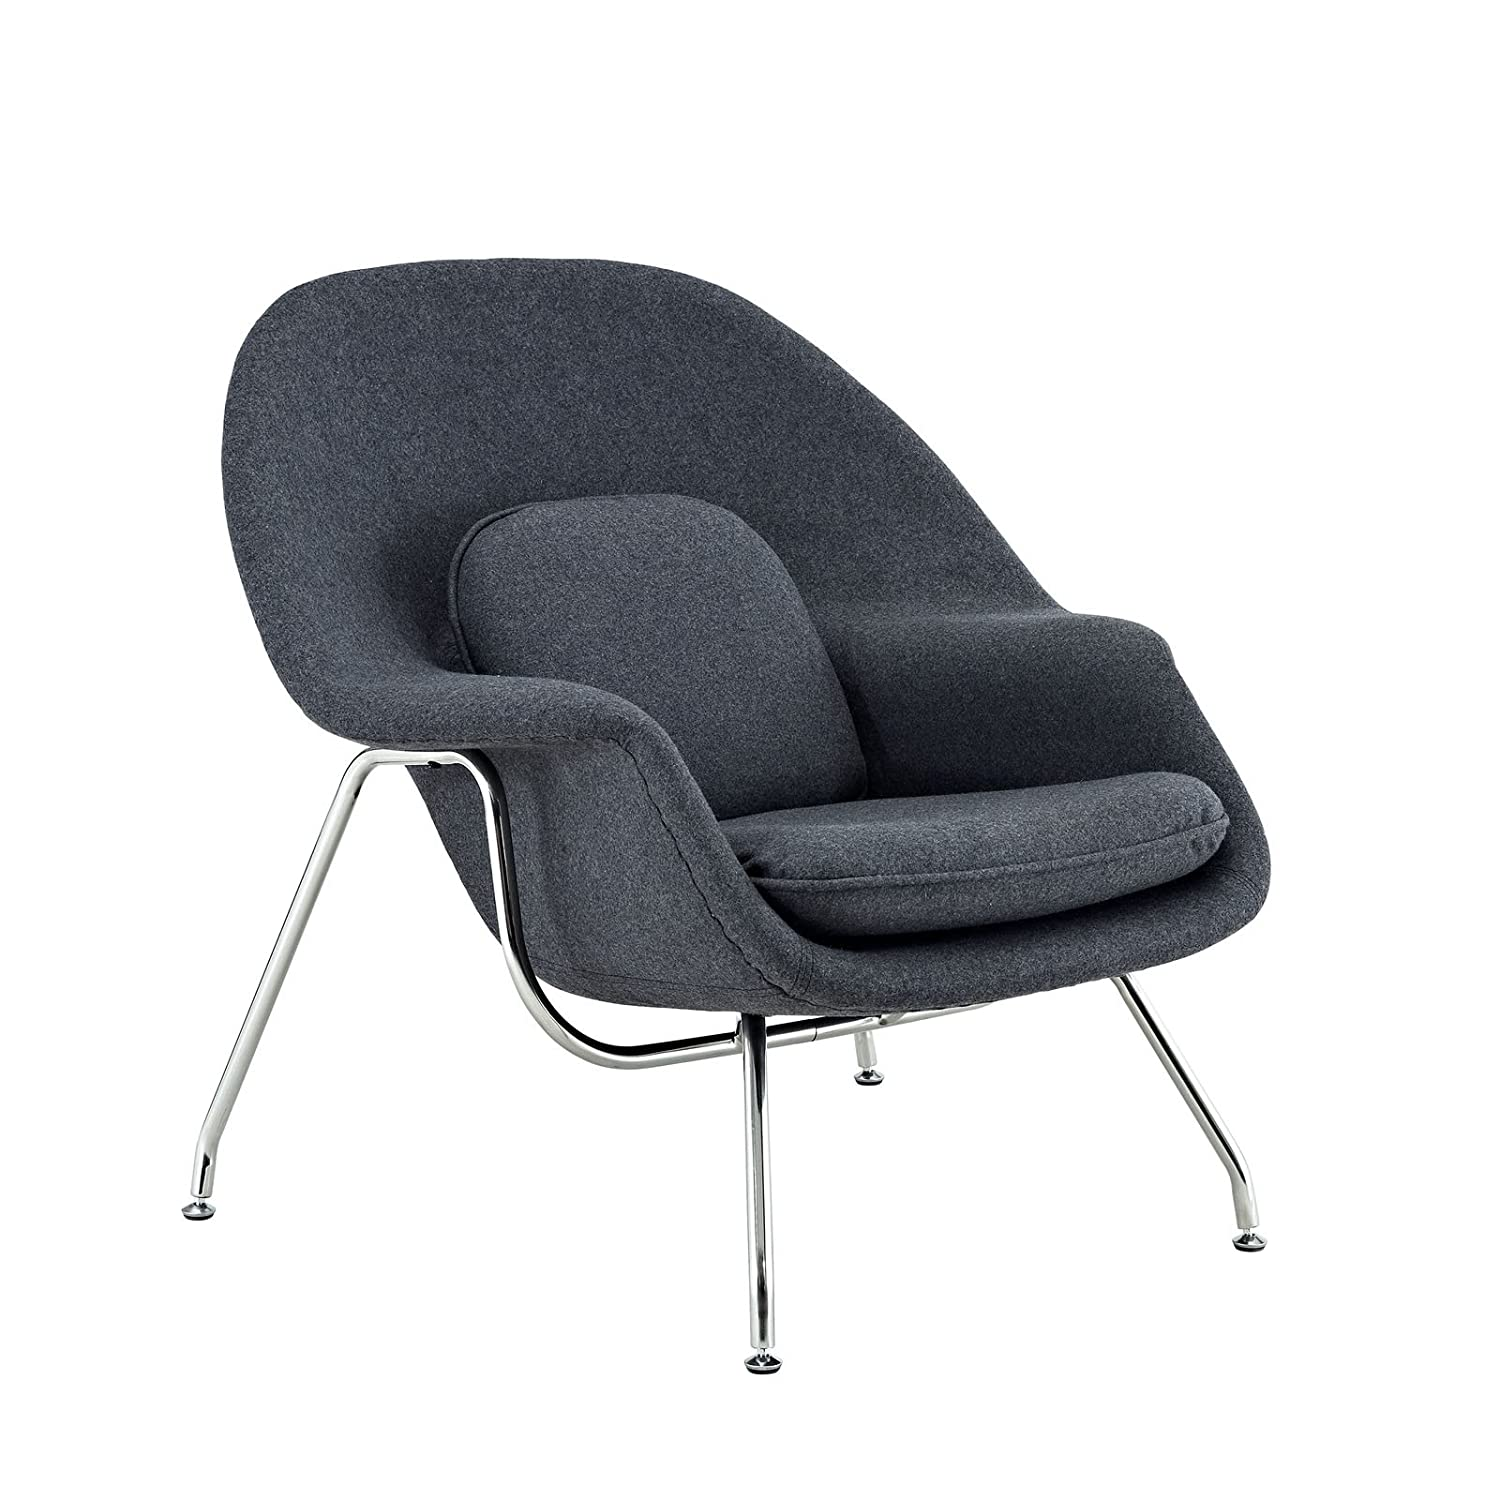 amazoncom modway eero saarinen style womb chair and ottoman set in dark gray kitchen u0026 dining